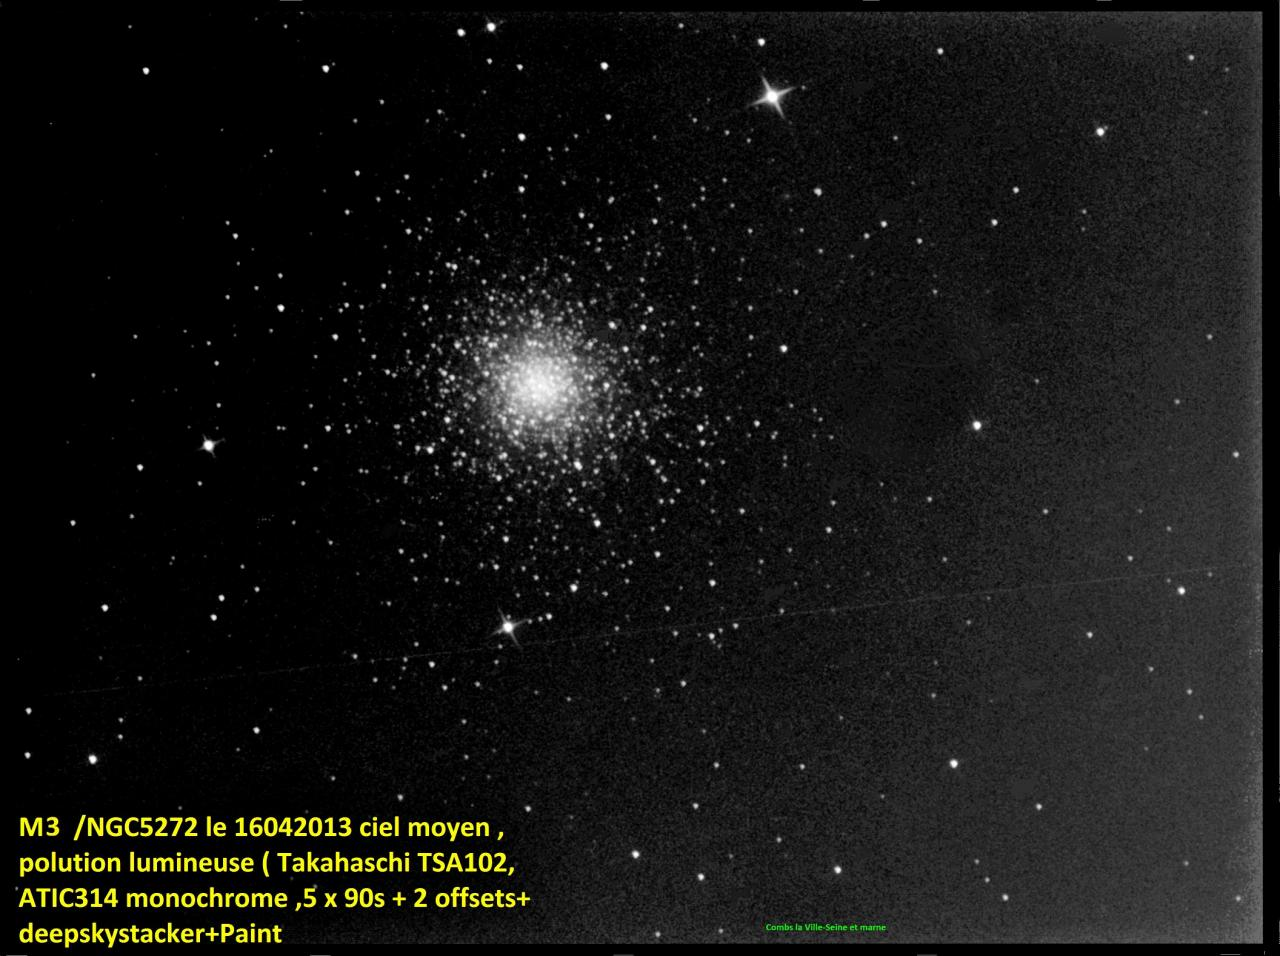 M3  NGC 5272  Constellation du Bouvier